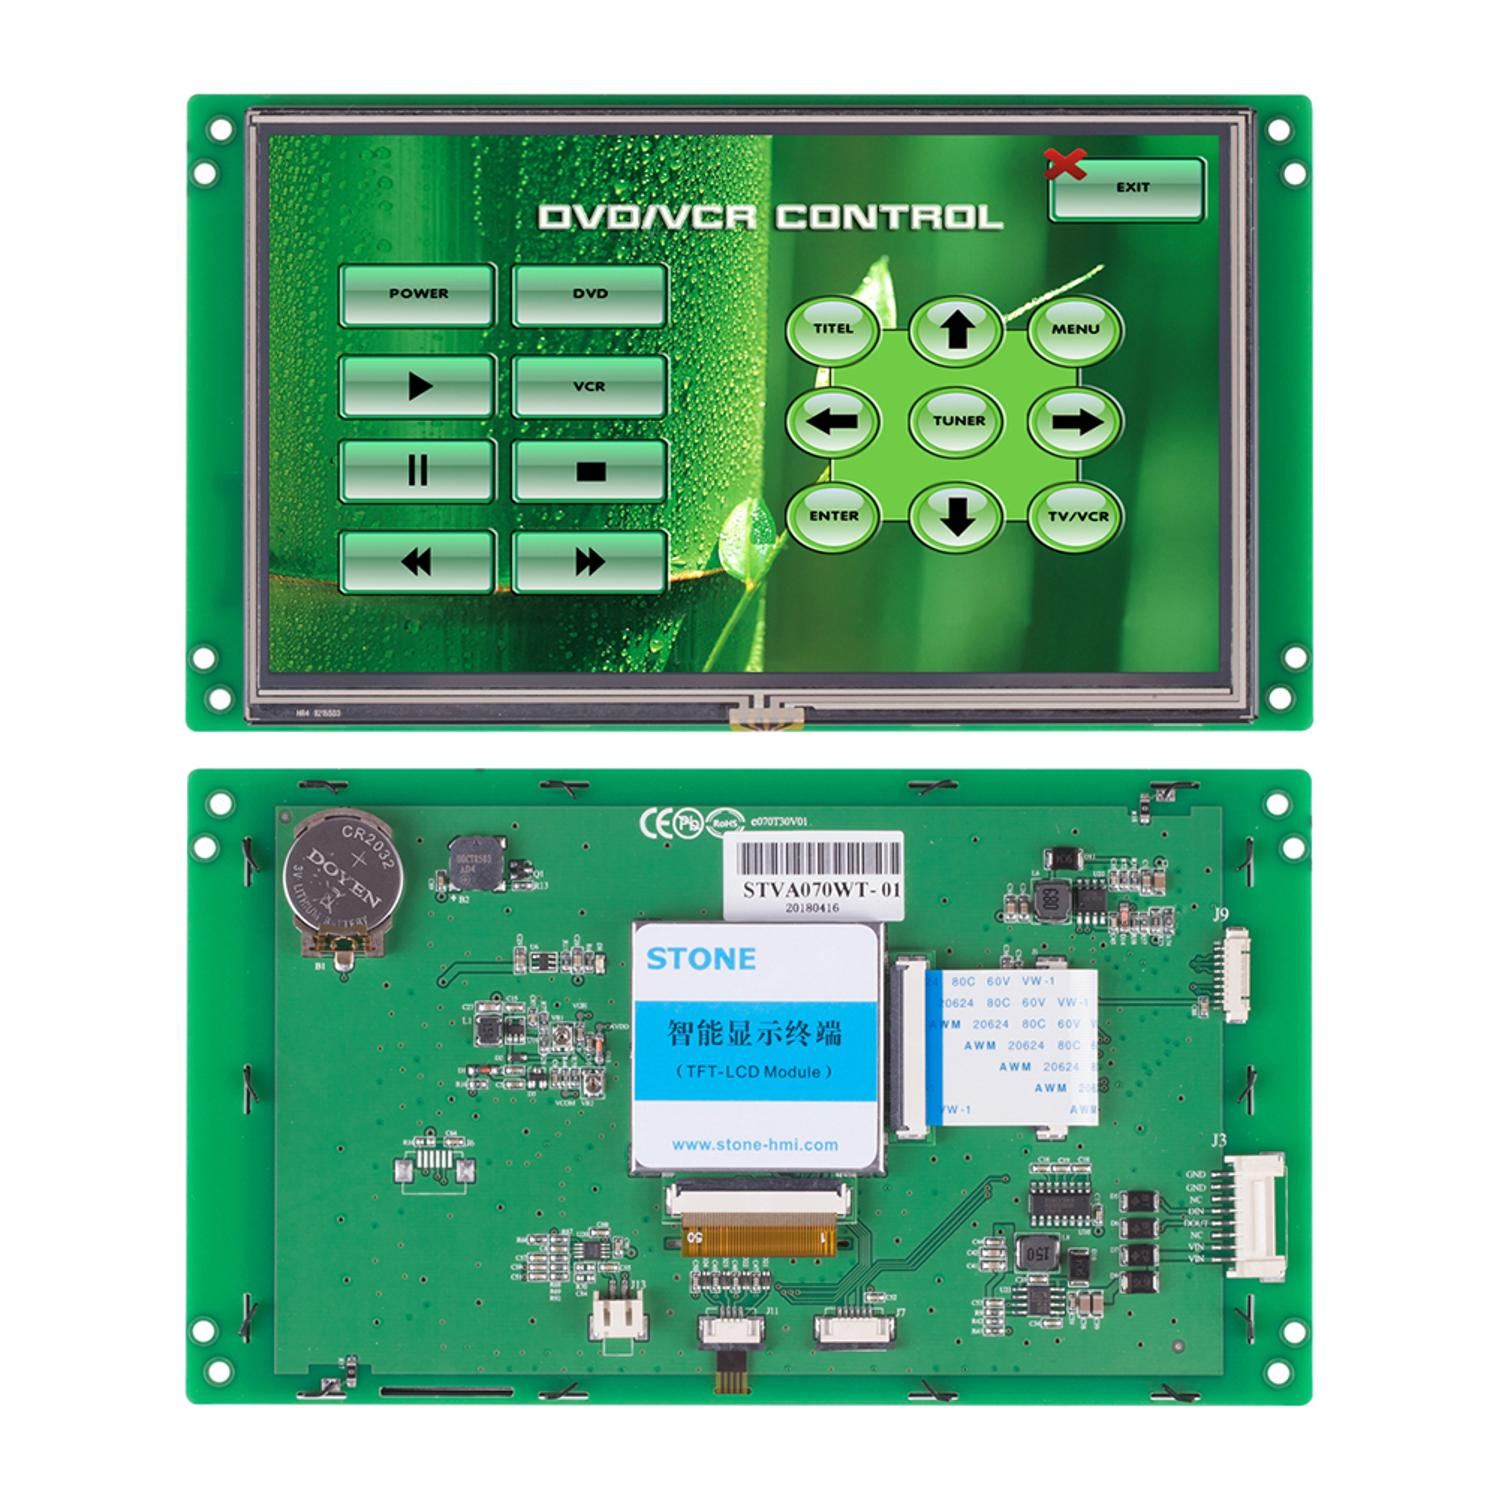 STONE 7 Inch Industiral LCD Display Module With Control Board For Equipment Control Panel